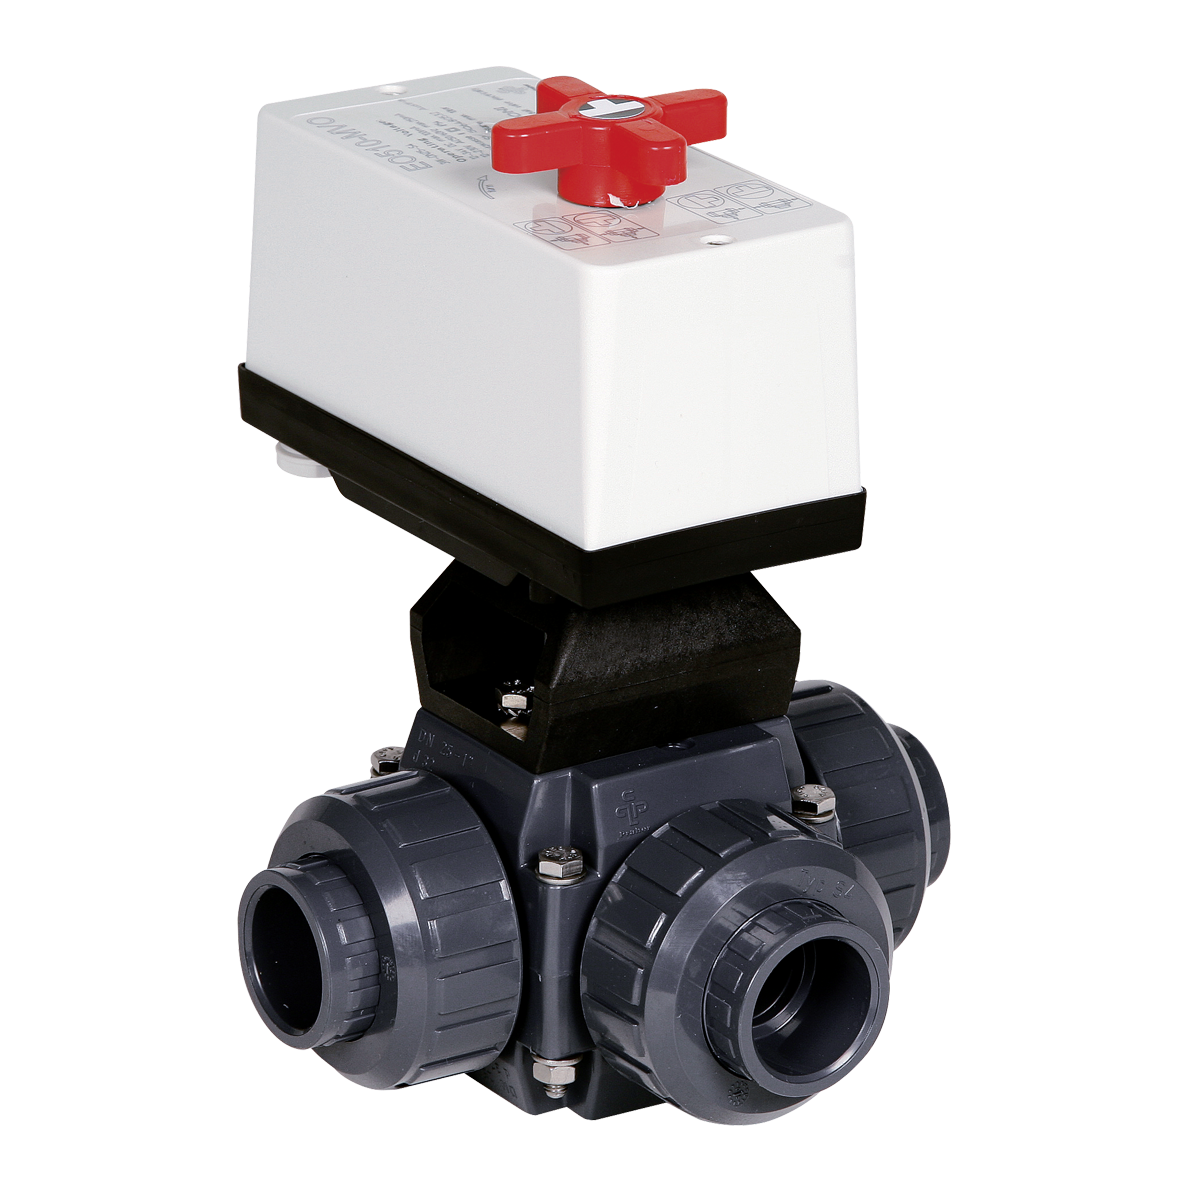 Praher 3-way ball valve S4 PVC with EO510 actuator, grey, black, white, red